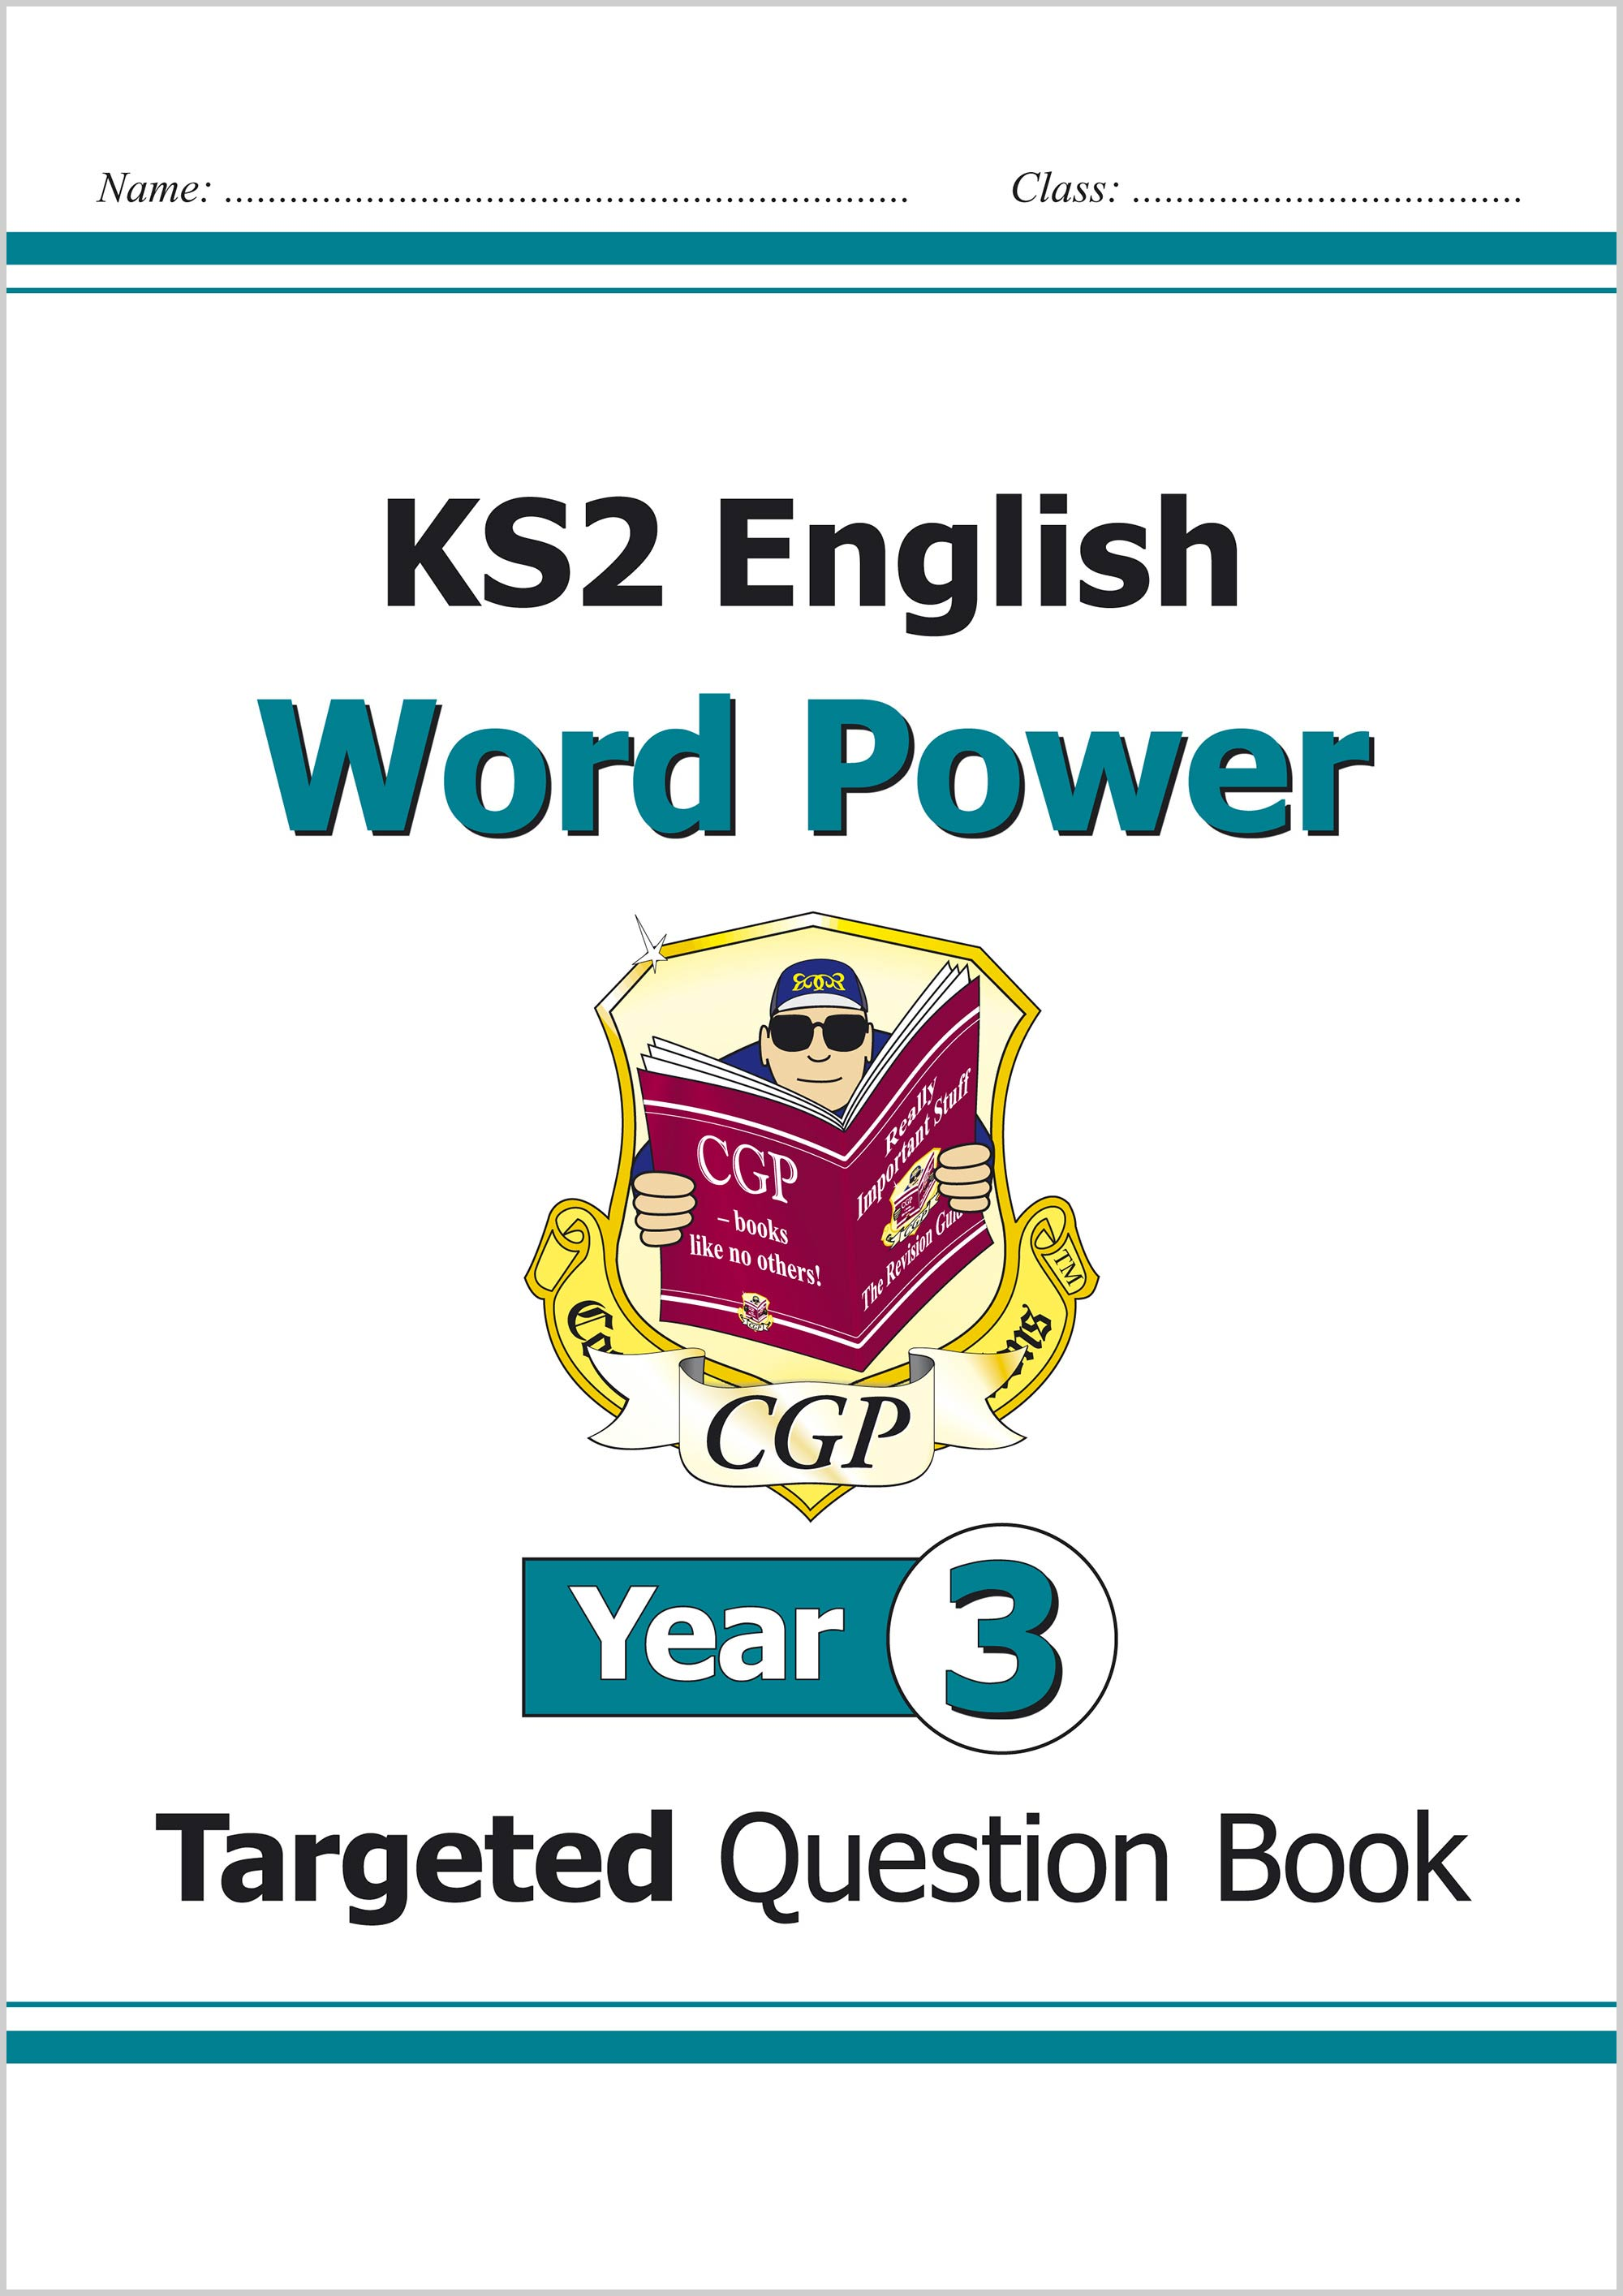 E3WPW21 - KS2 English Targeted Question Book: Word Power - Year 3